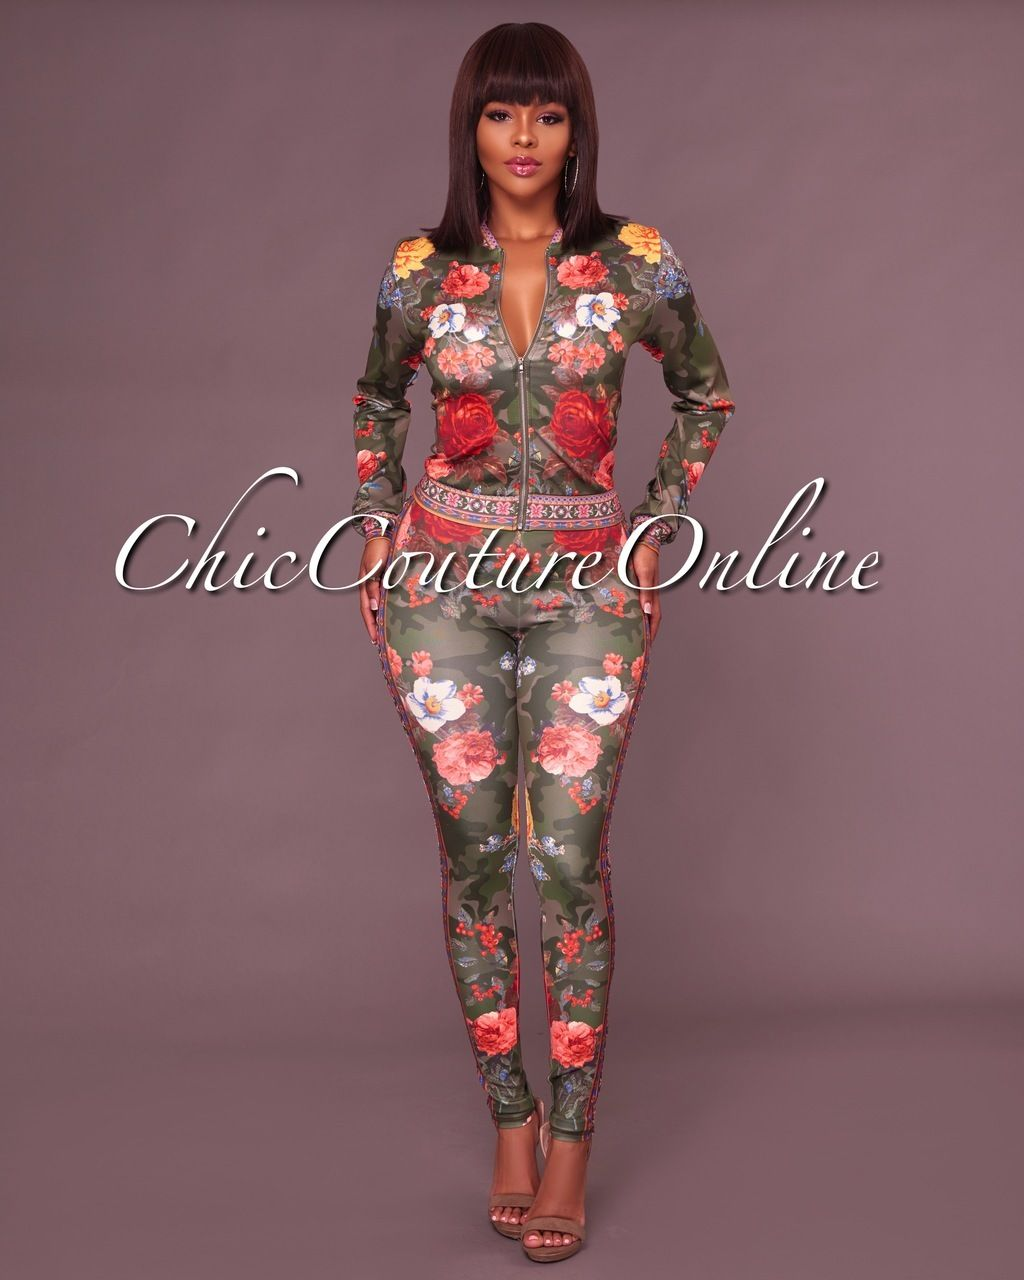 685de88596 Pin by Chic Couture Online on Clothing ~ Chic Couture Online | Chic ...